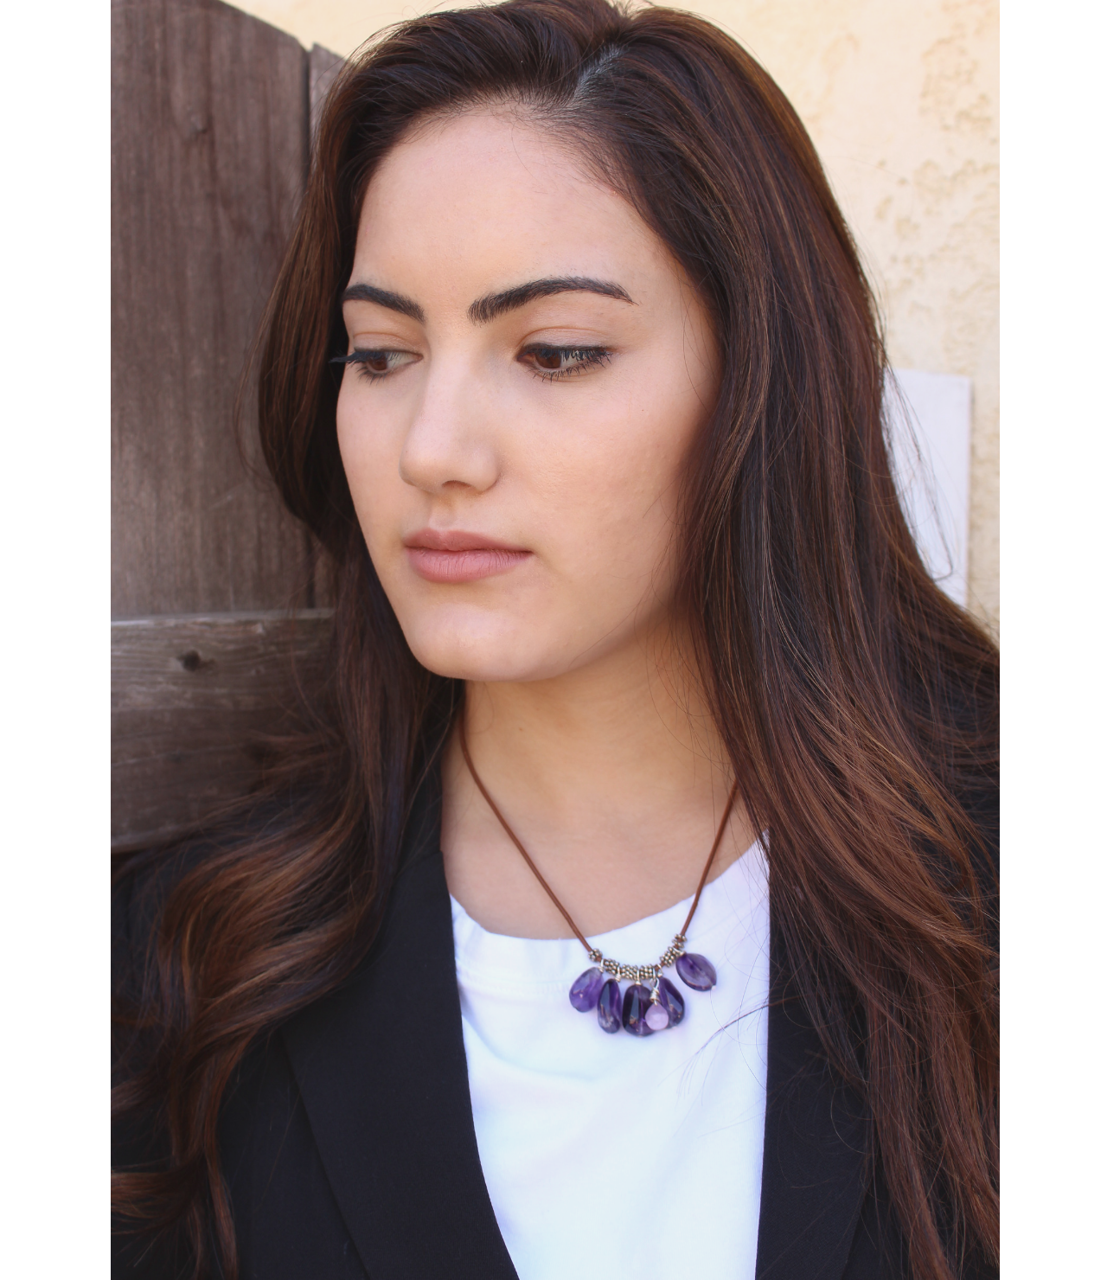 leather amethyst necklace  for business on model